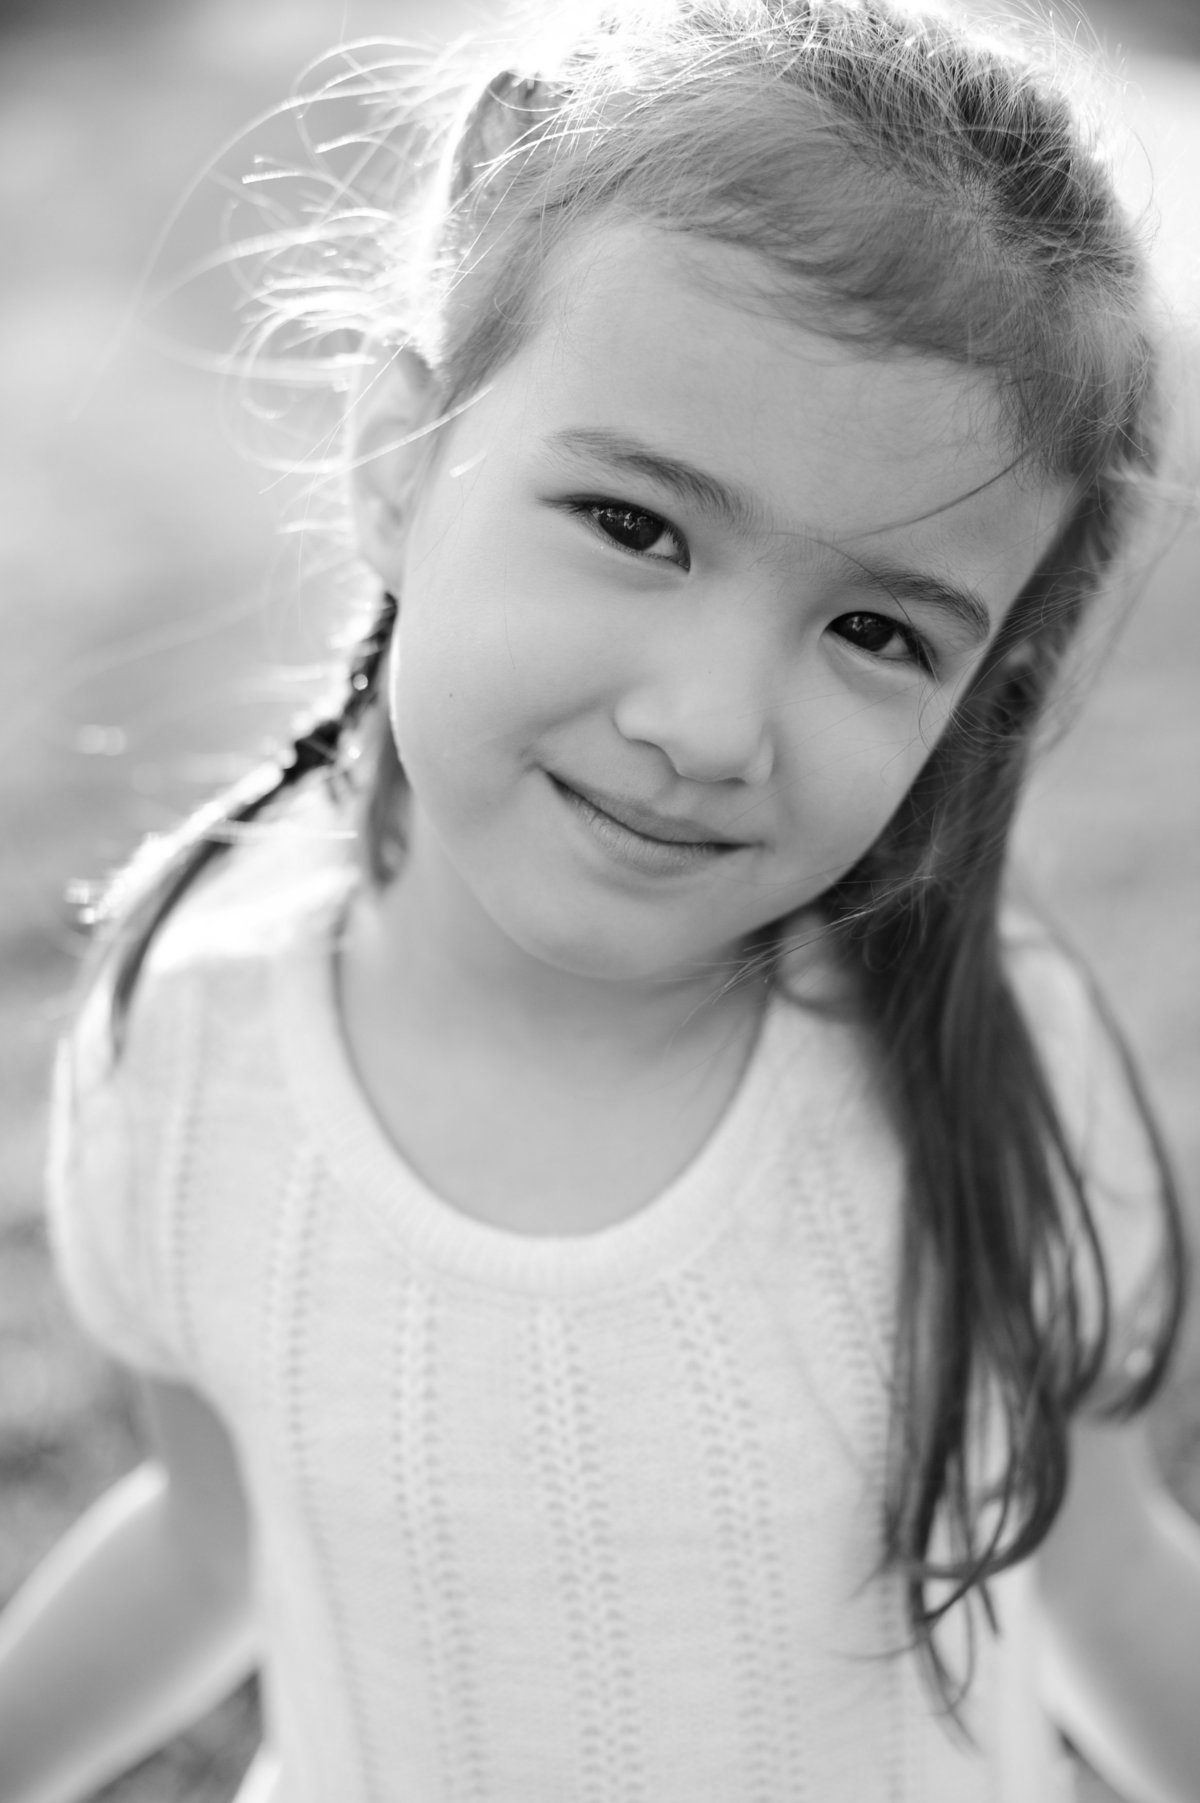 Korneychuk Family Holiday Portraits-Favorites-0004